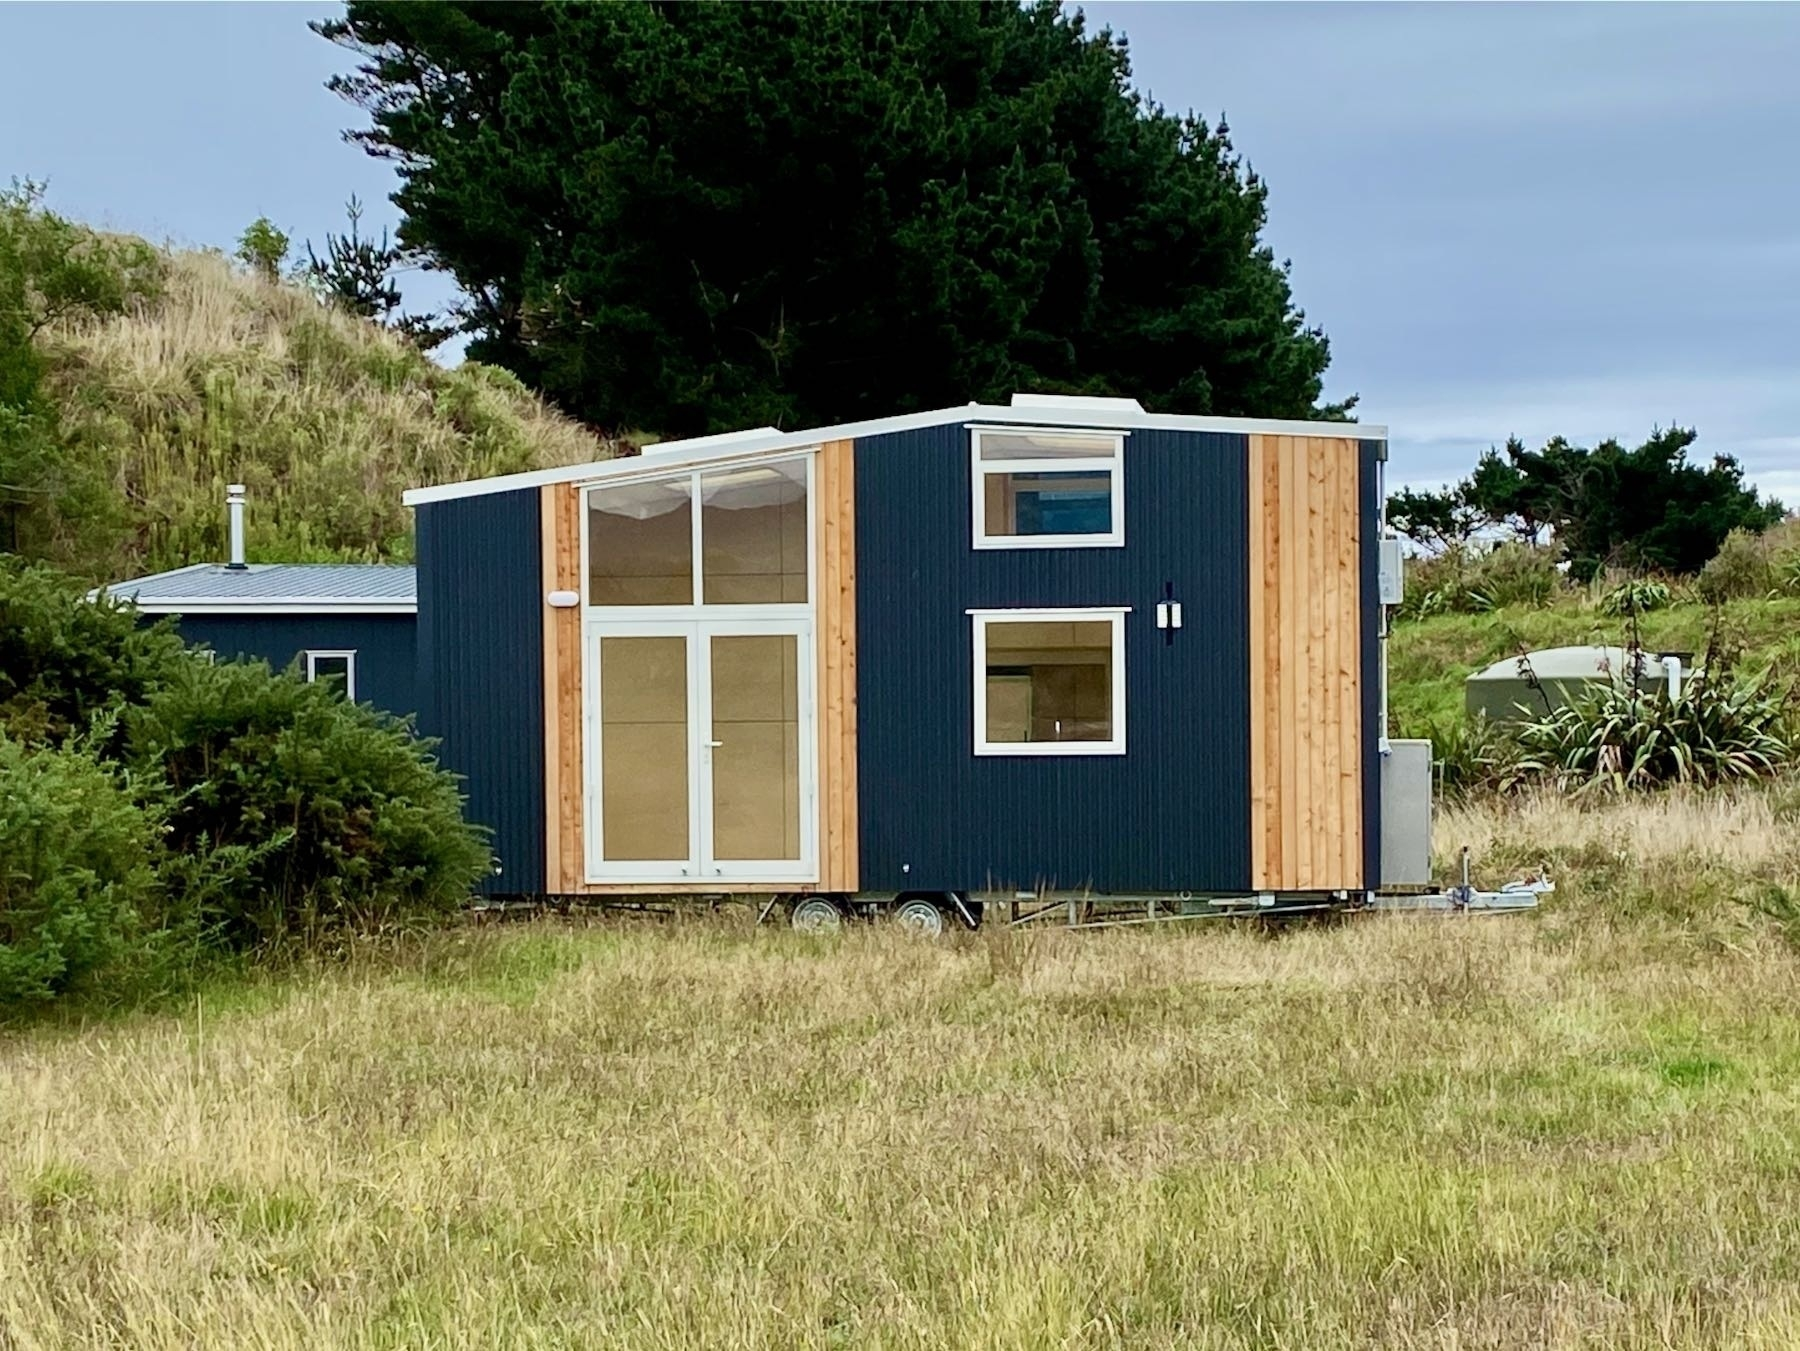 Front side of the tiny house.